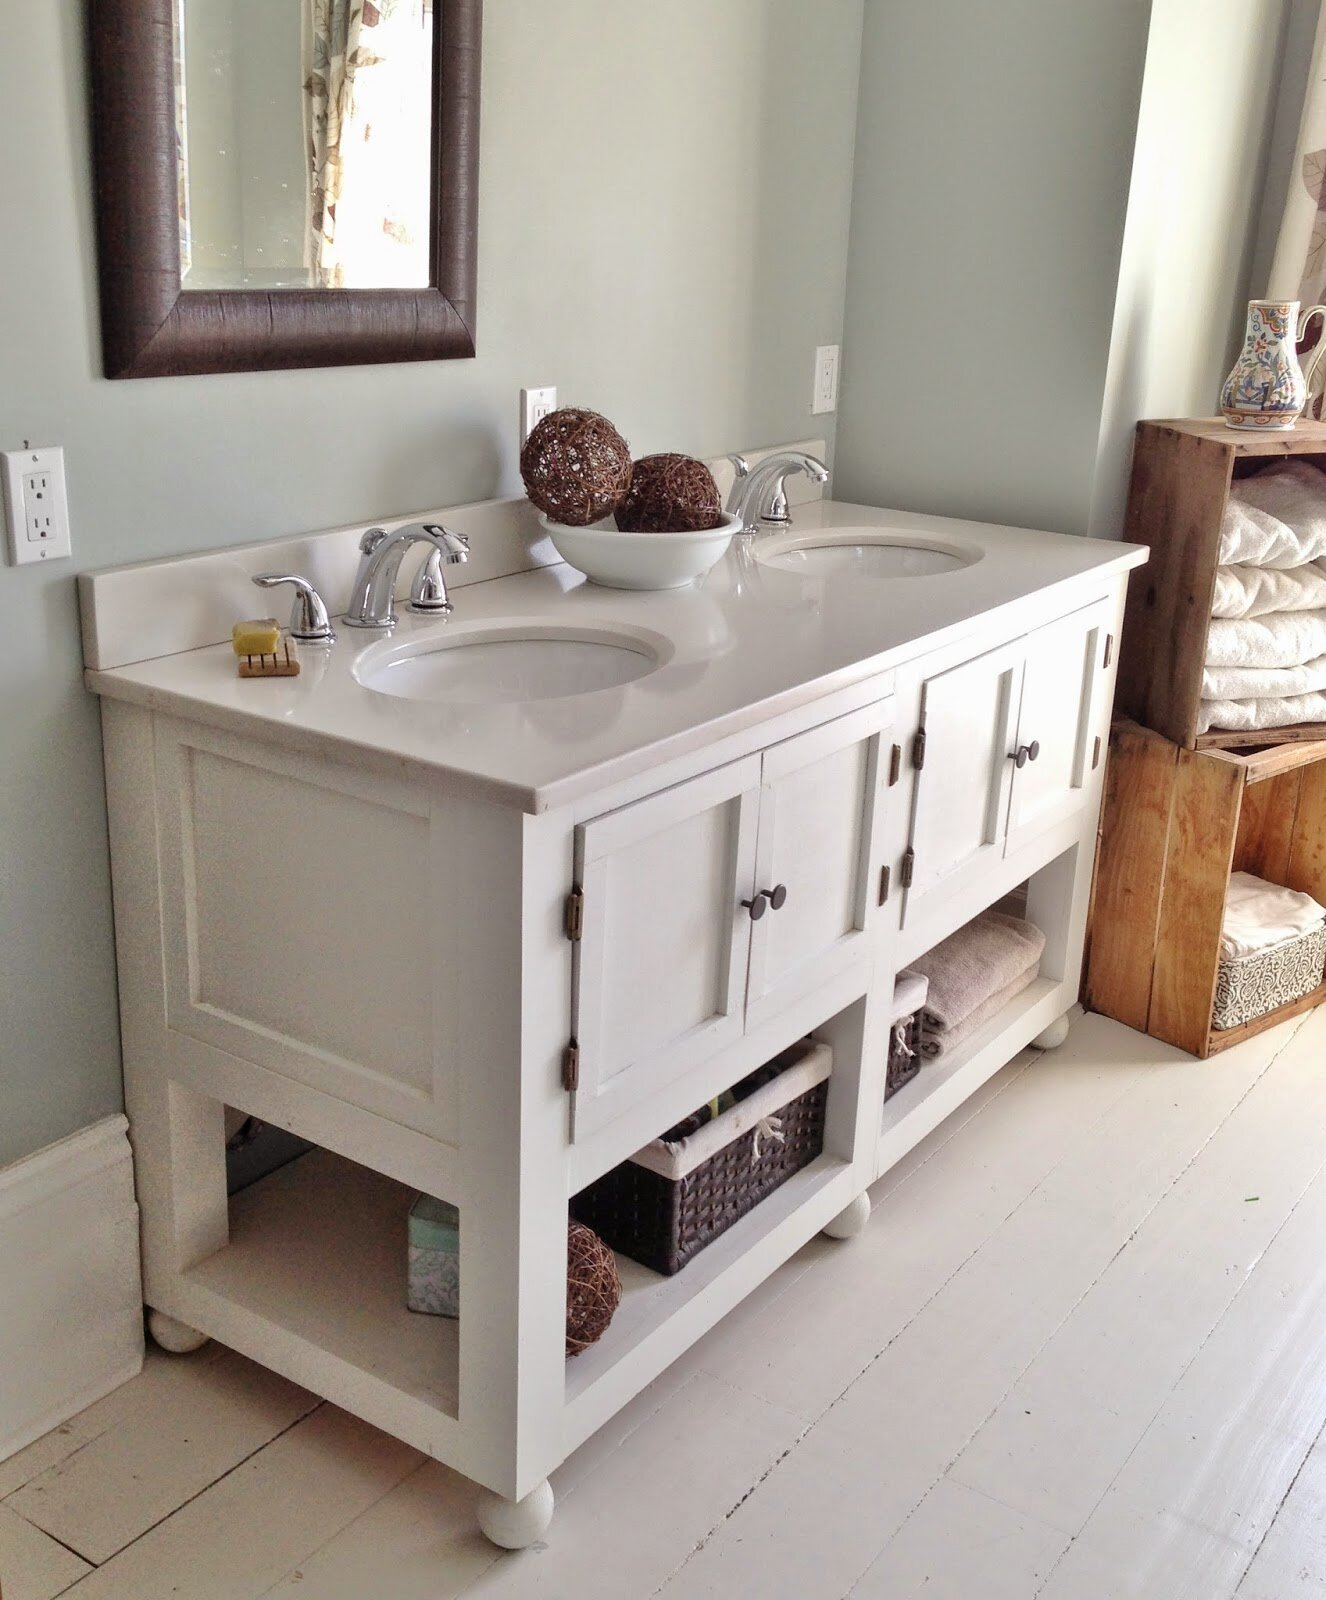 Fairmont Designs Bathroom Vanities Farmhouse Vanity Affordable Custom Made Double Sink